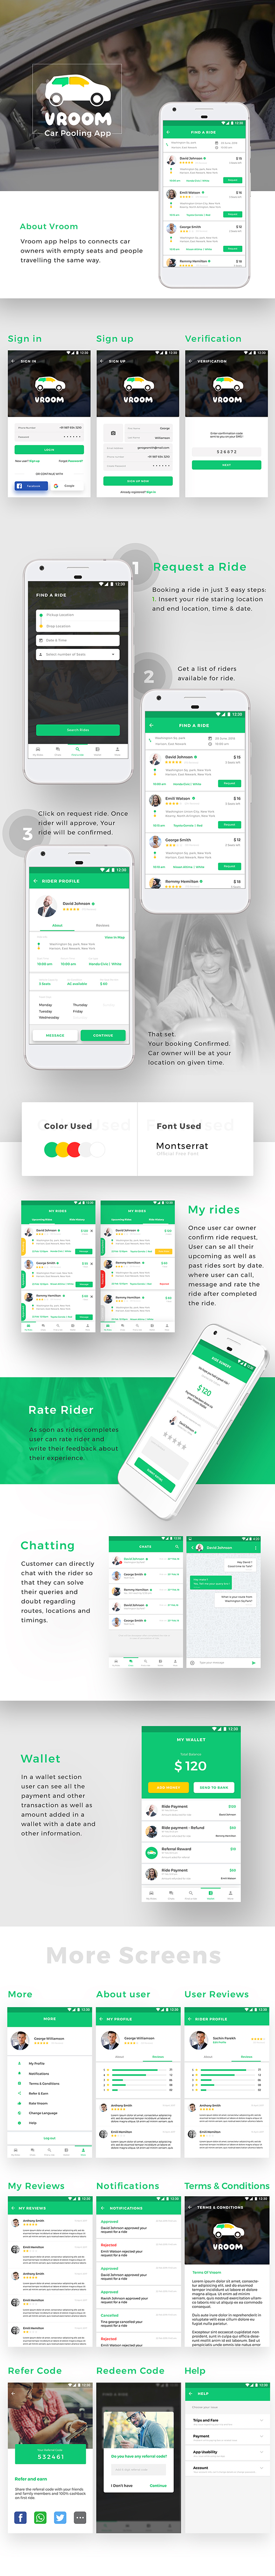 Car Pooling Android + iOS App | 2 Apps Rider + Driver | Flutter Template - 1